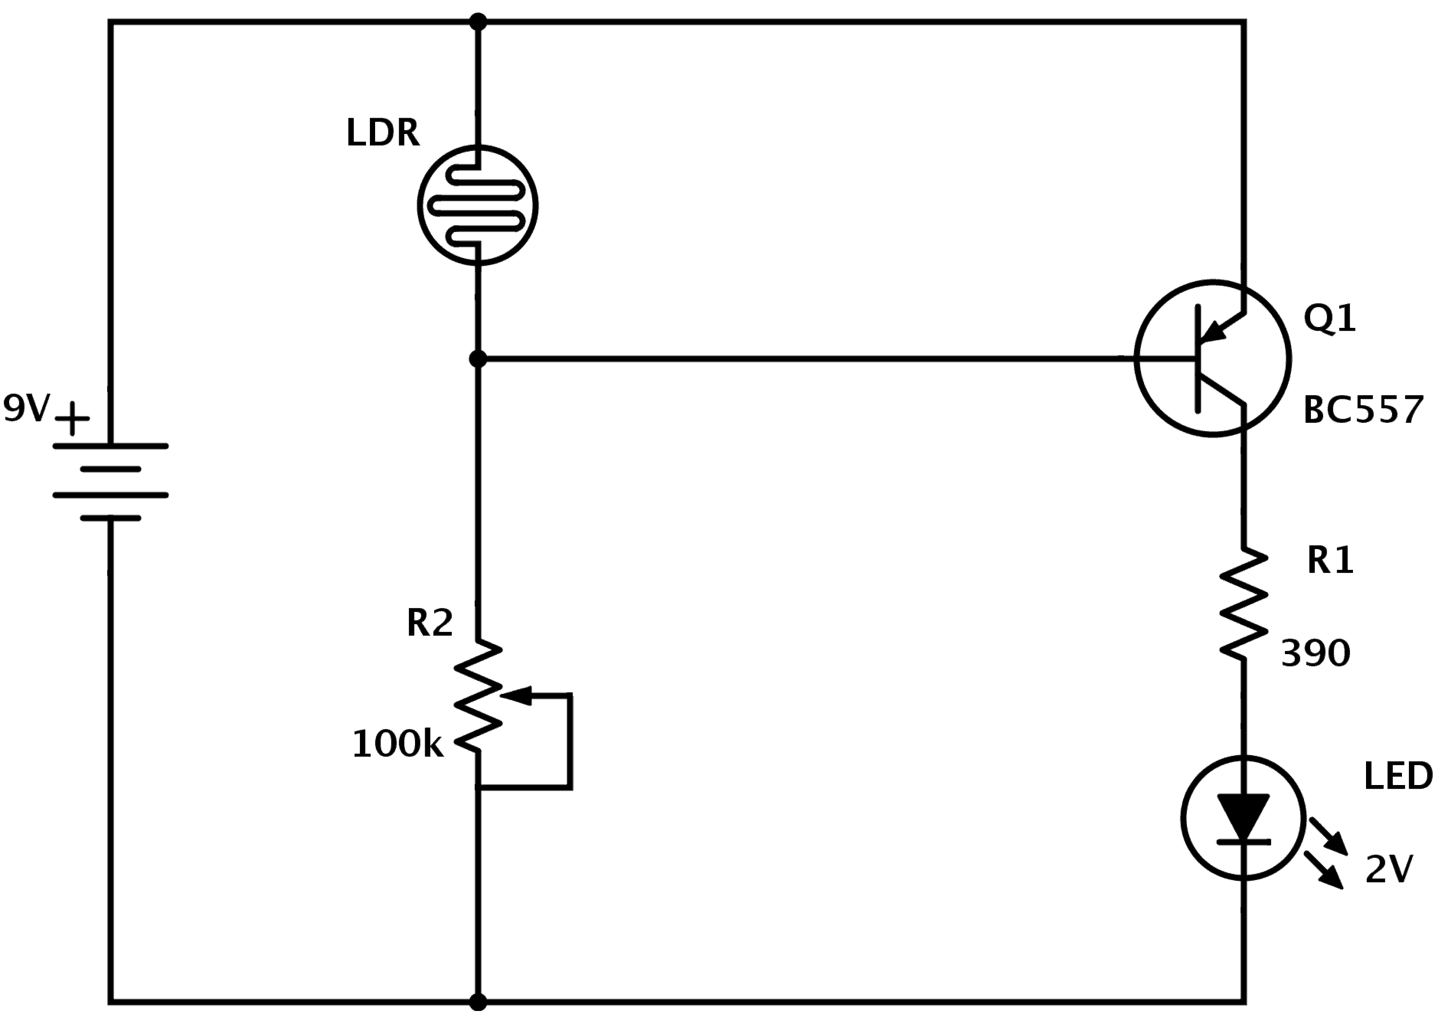 Jfet Schematic Symbol Wiring Diagrams Inductor Circuit Symbols Electrical Switch Diagram Get Free Image Fet Varistor